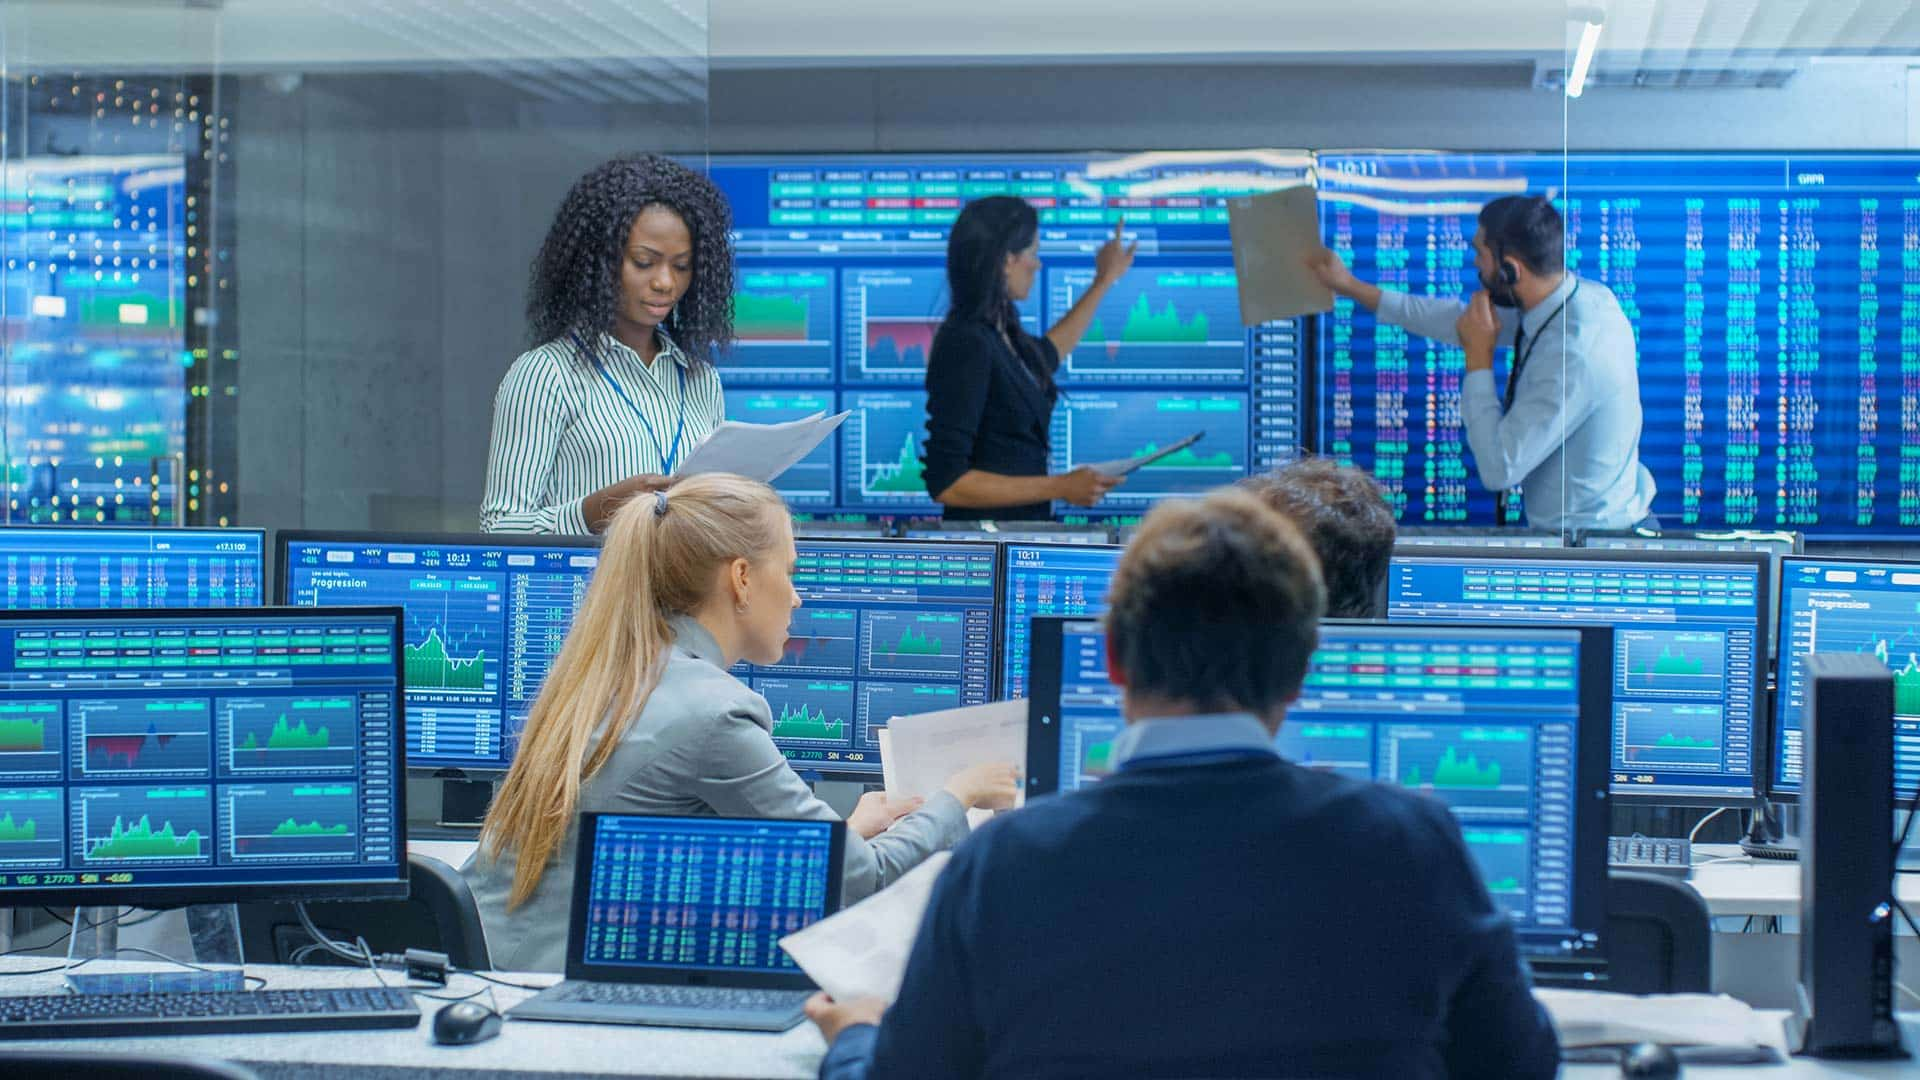 The Digital Transformation of Financial Services